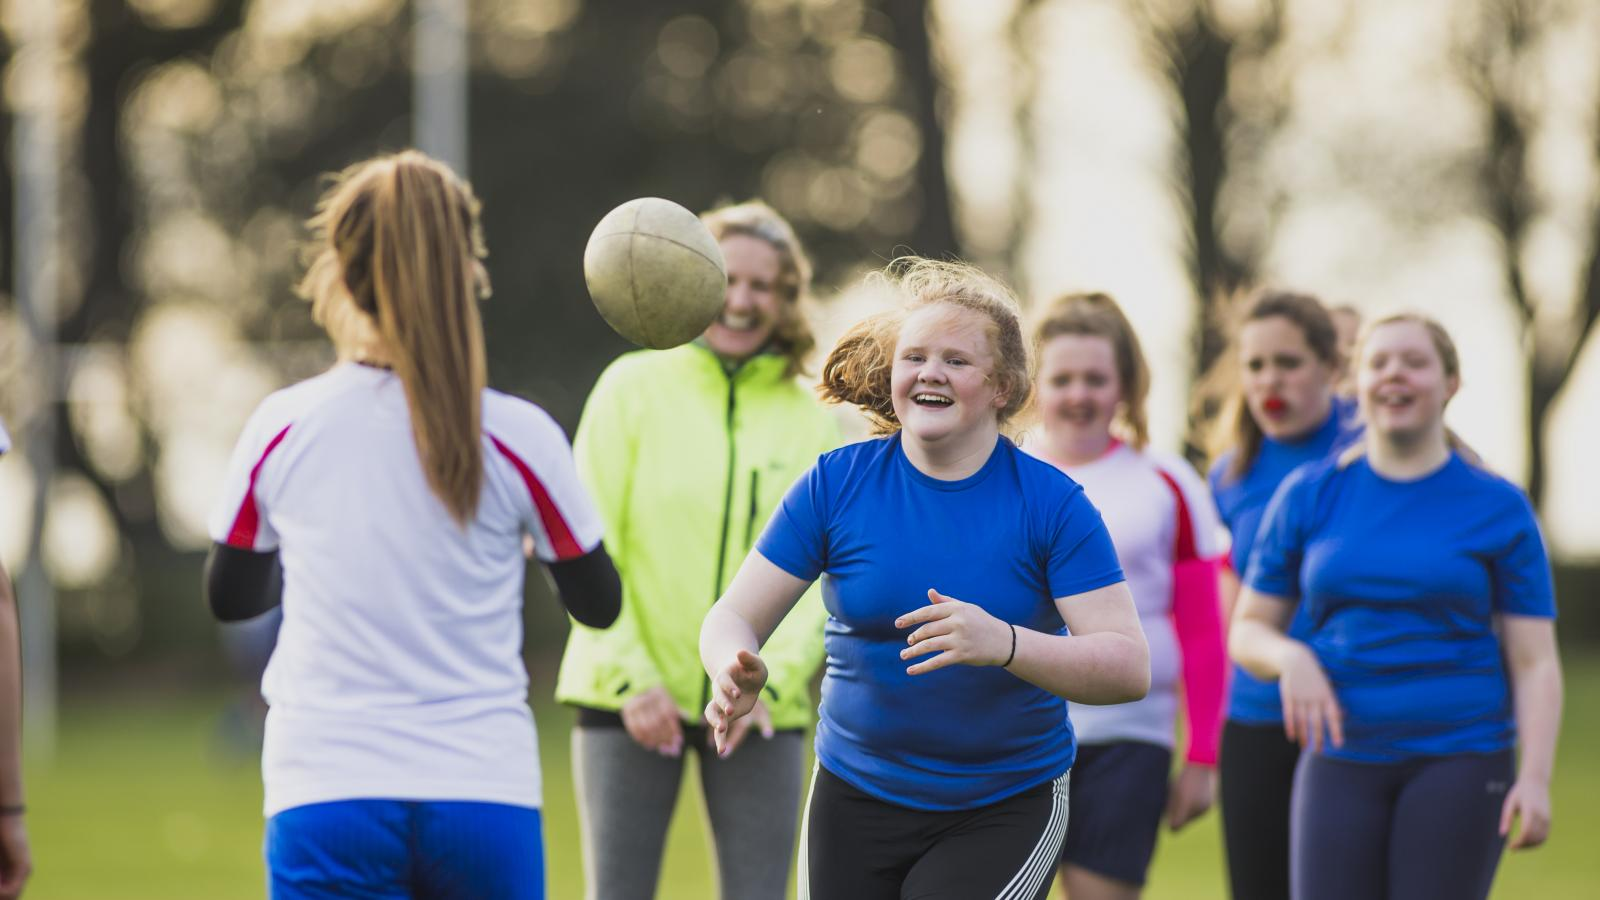 Adolescent Girls Get Active - Image